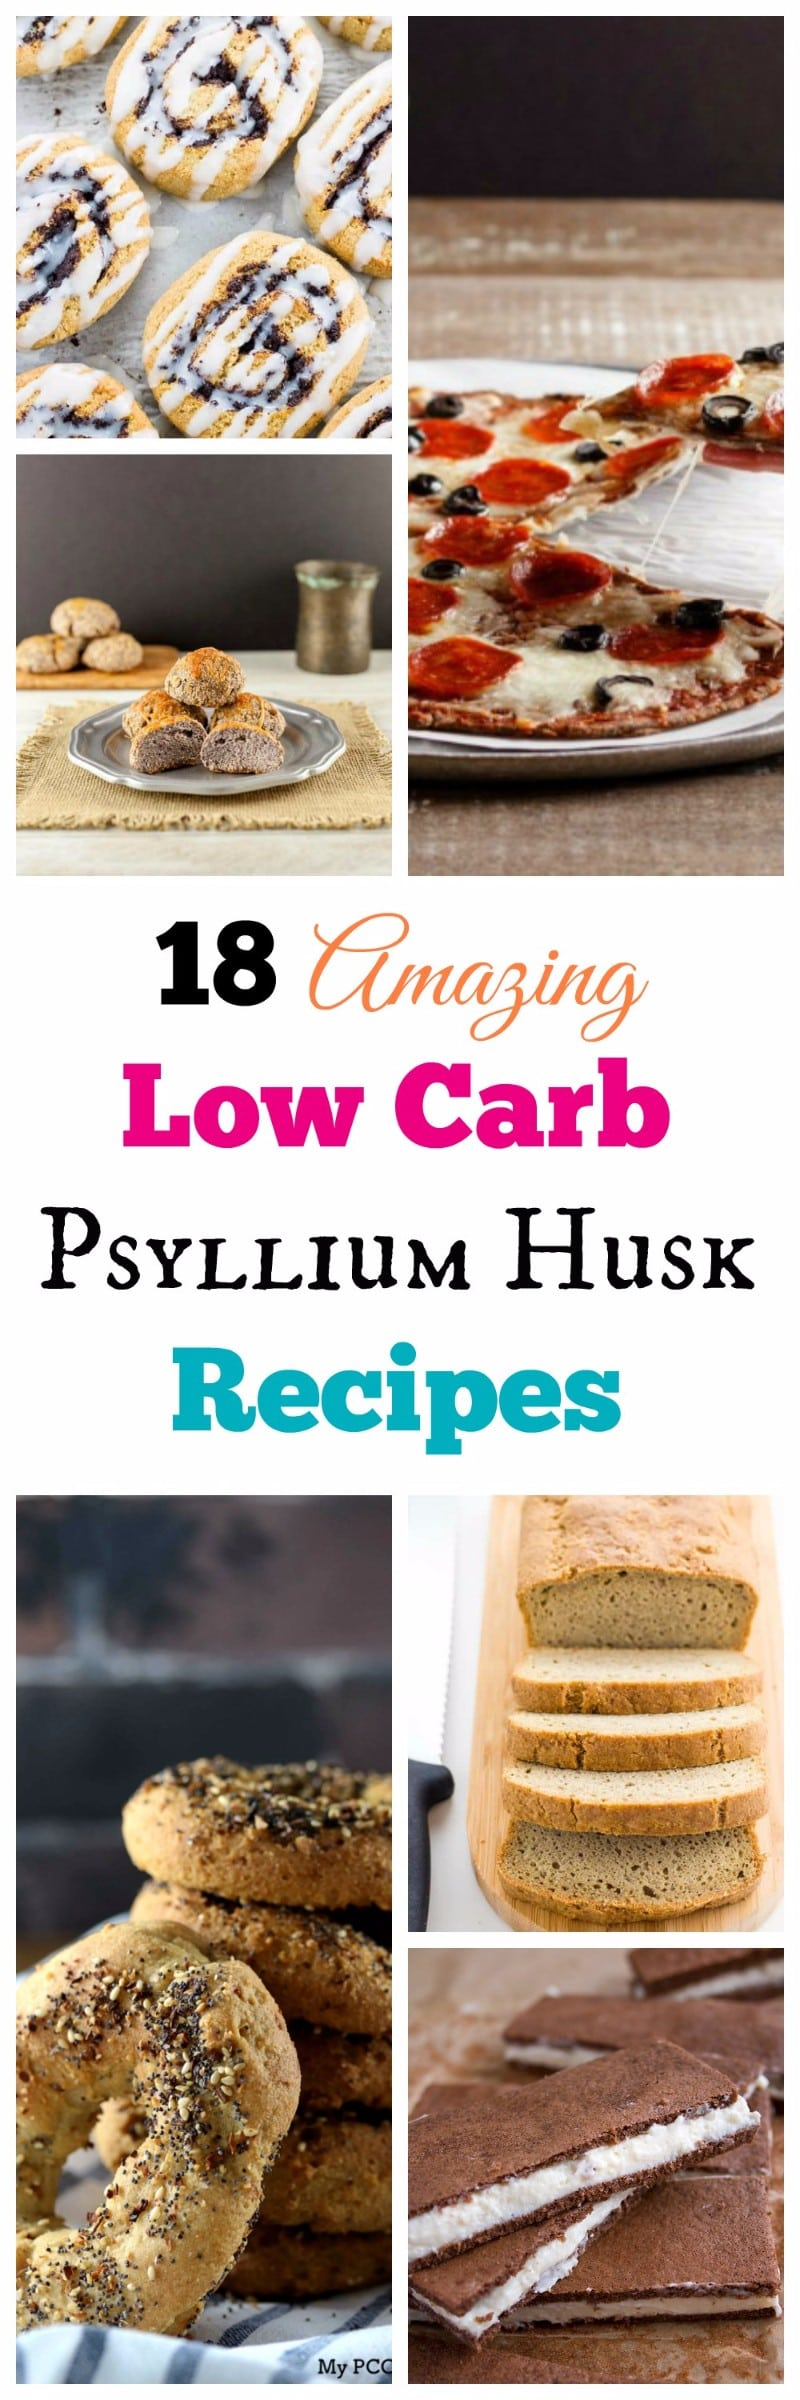 My PCOS Kitchen - Low Carb Keto Psyllium Baked Goods Recipe Round Up - A compilation of gluten-free, sugar-free baked goods that use psyllium husk powder!